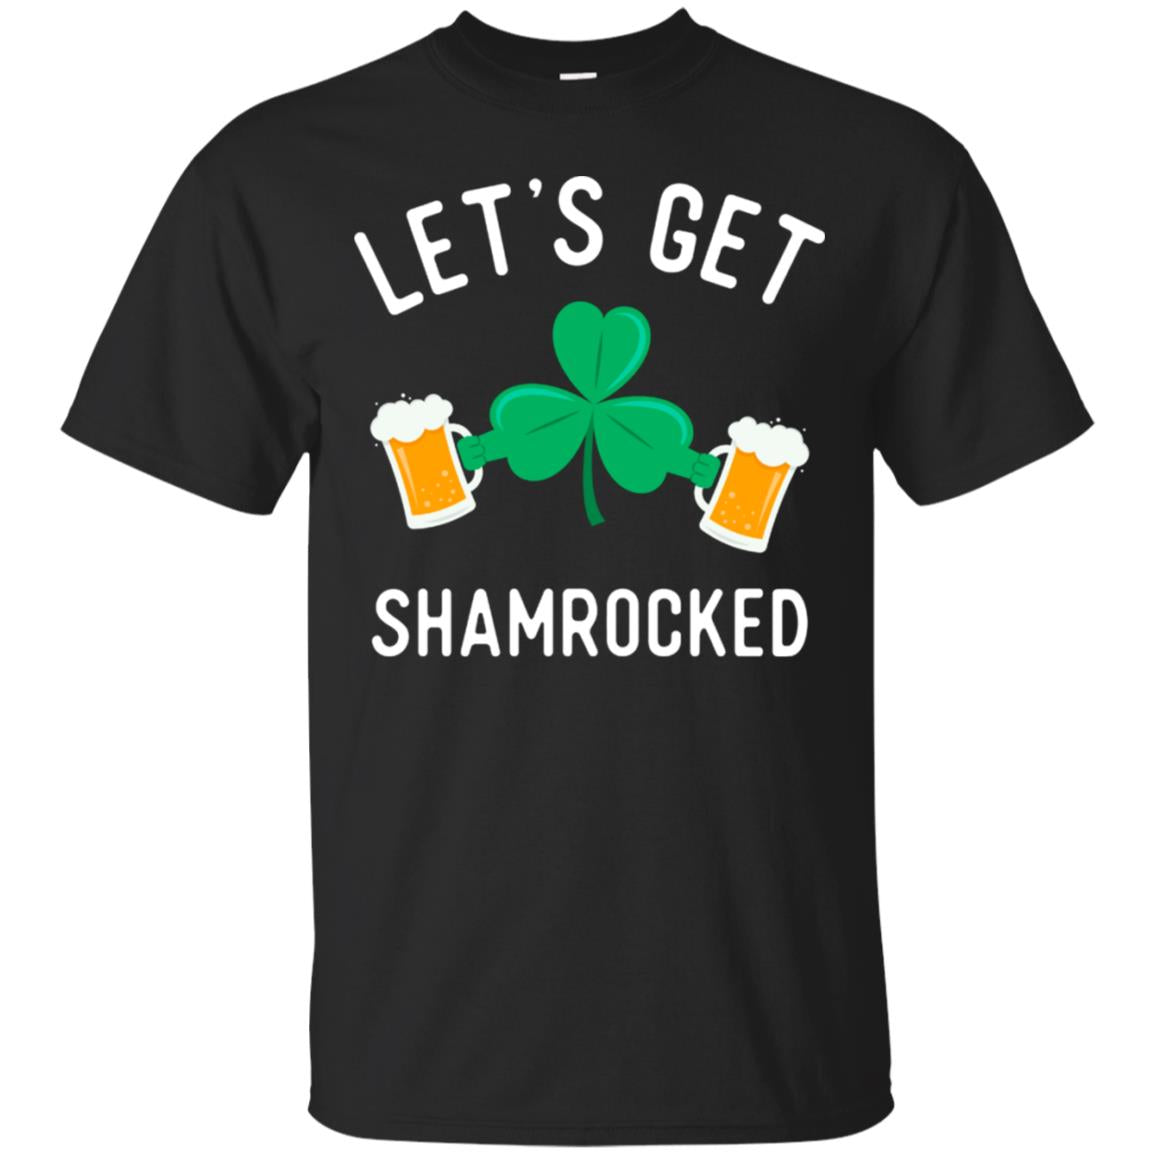 Let's Get Shamrocked Funny Shirt - Drinking Team Clover Tee 99promocode